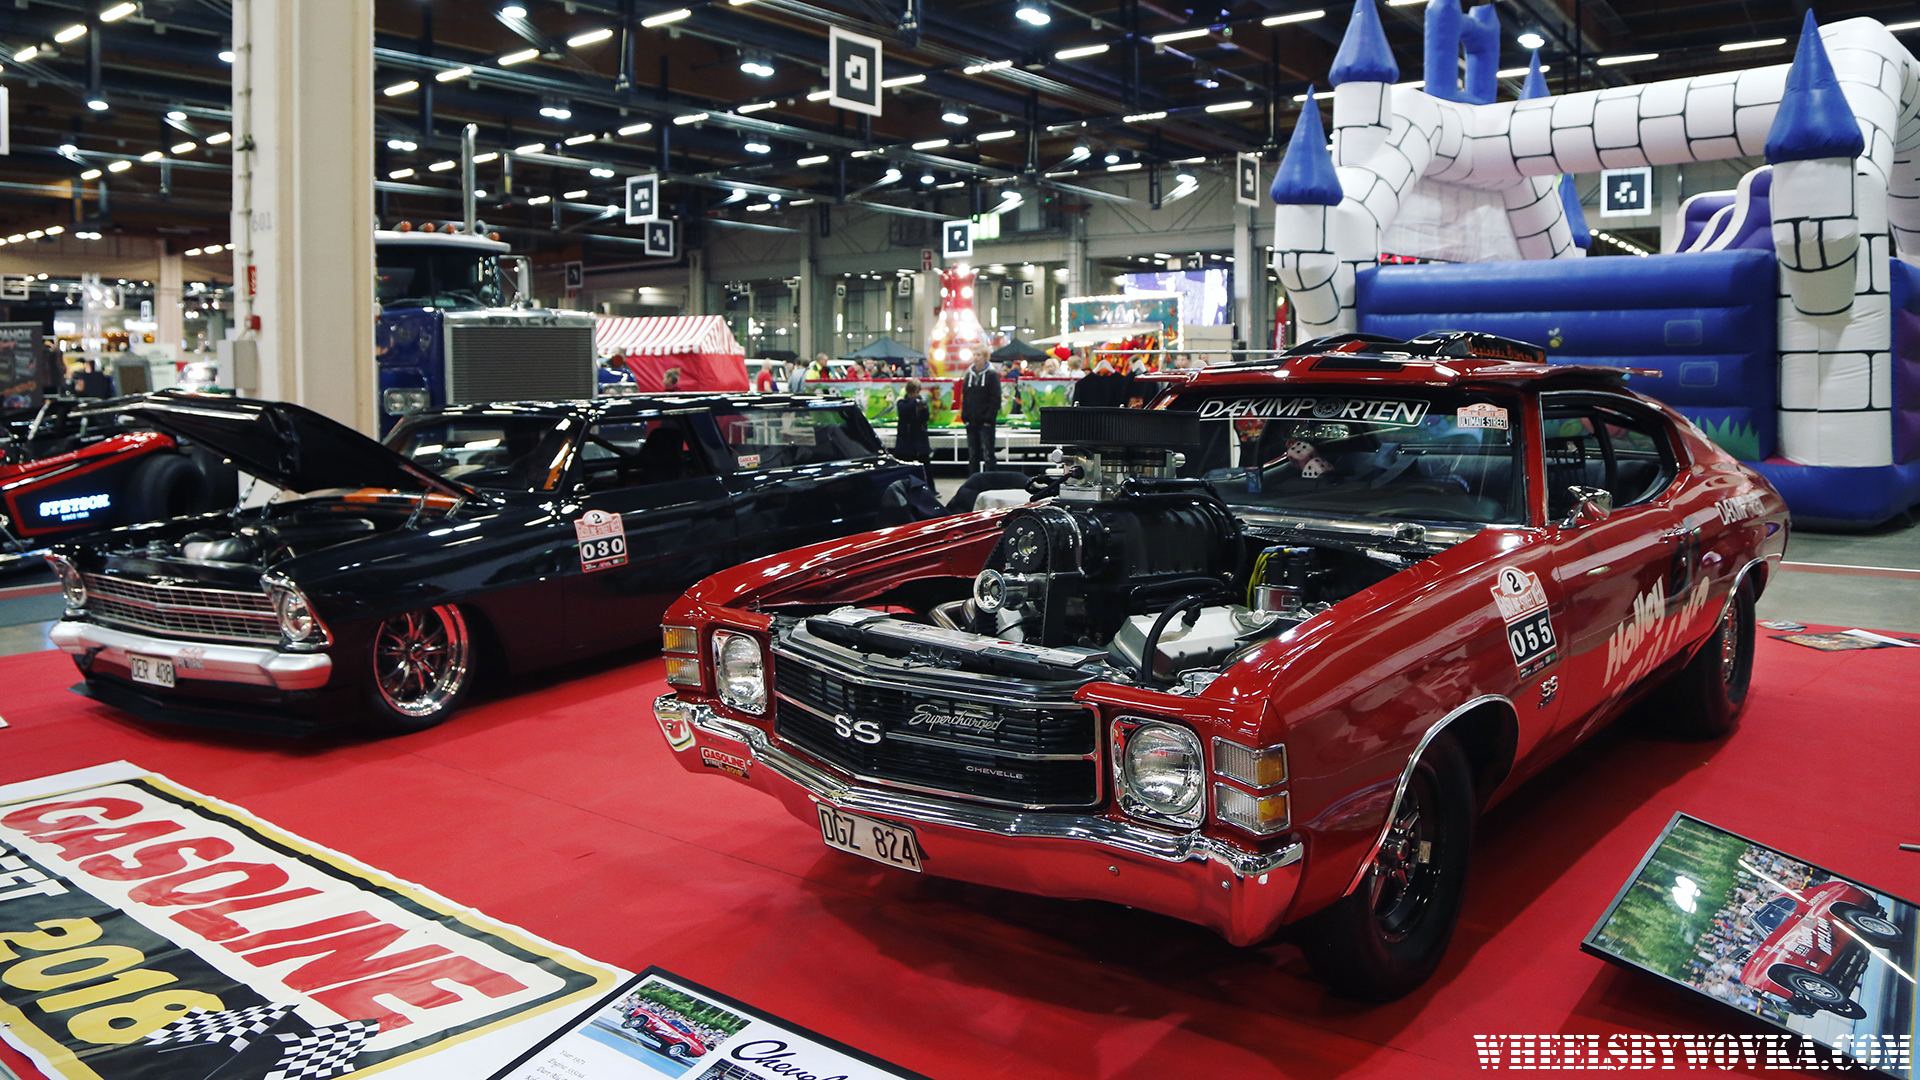 american-car-show-2018-helsinki-by-wheelsbywovka-1